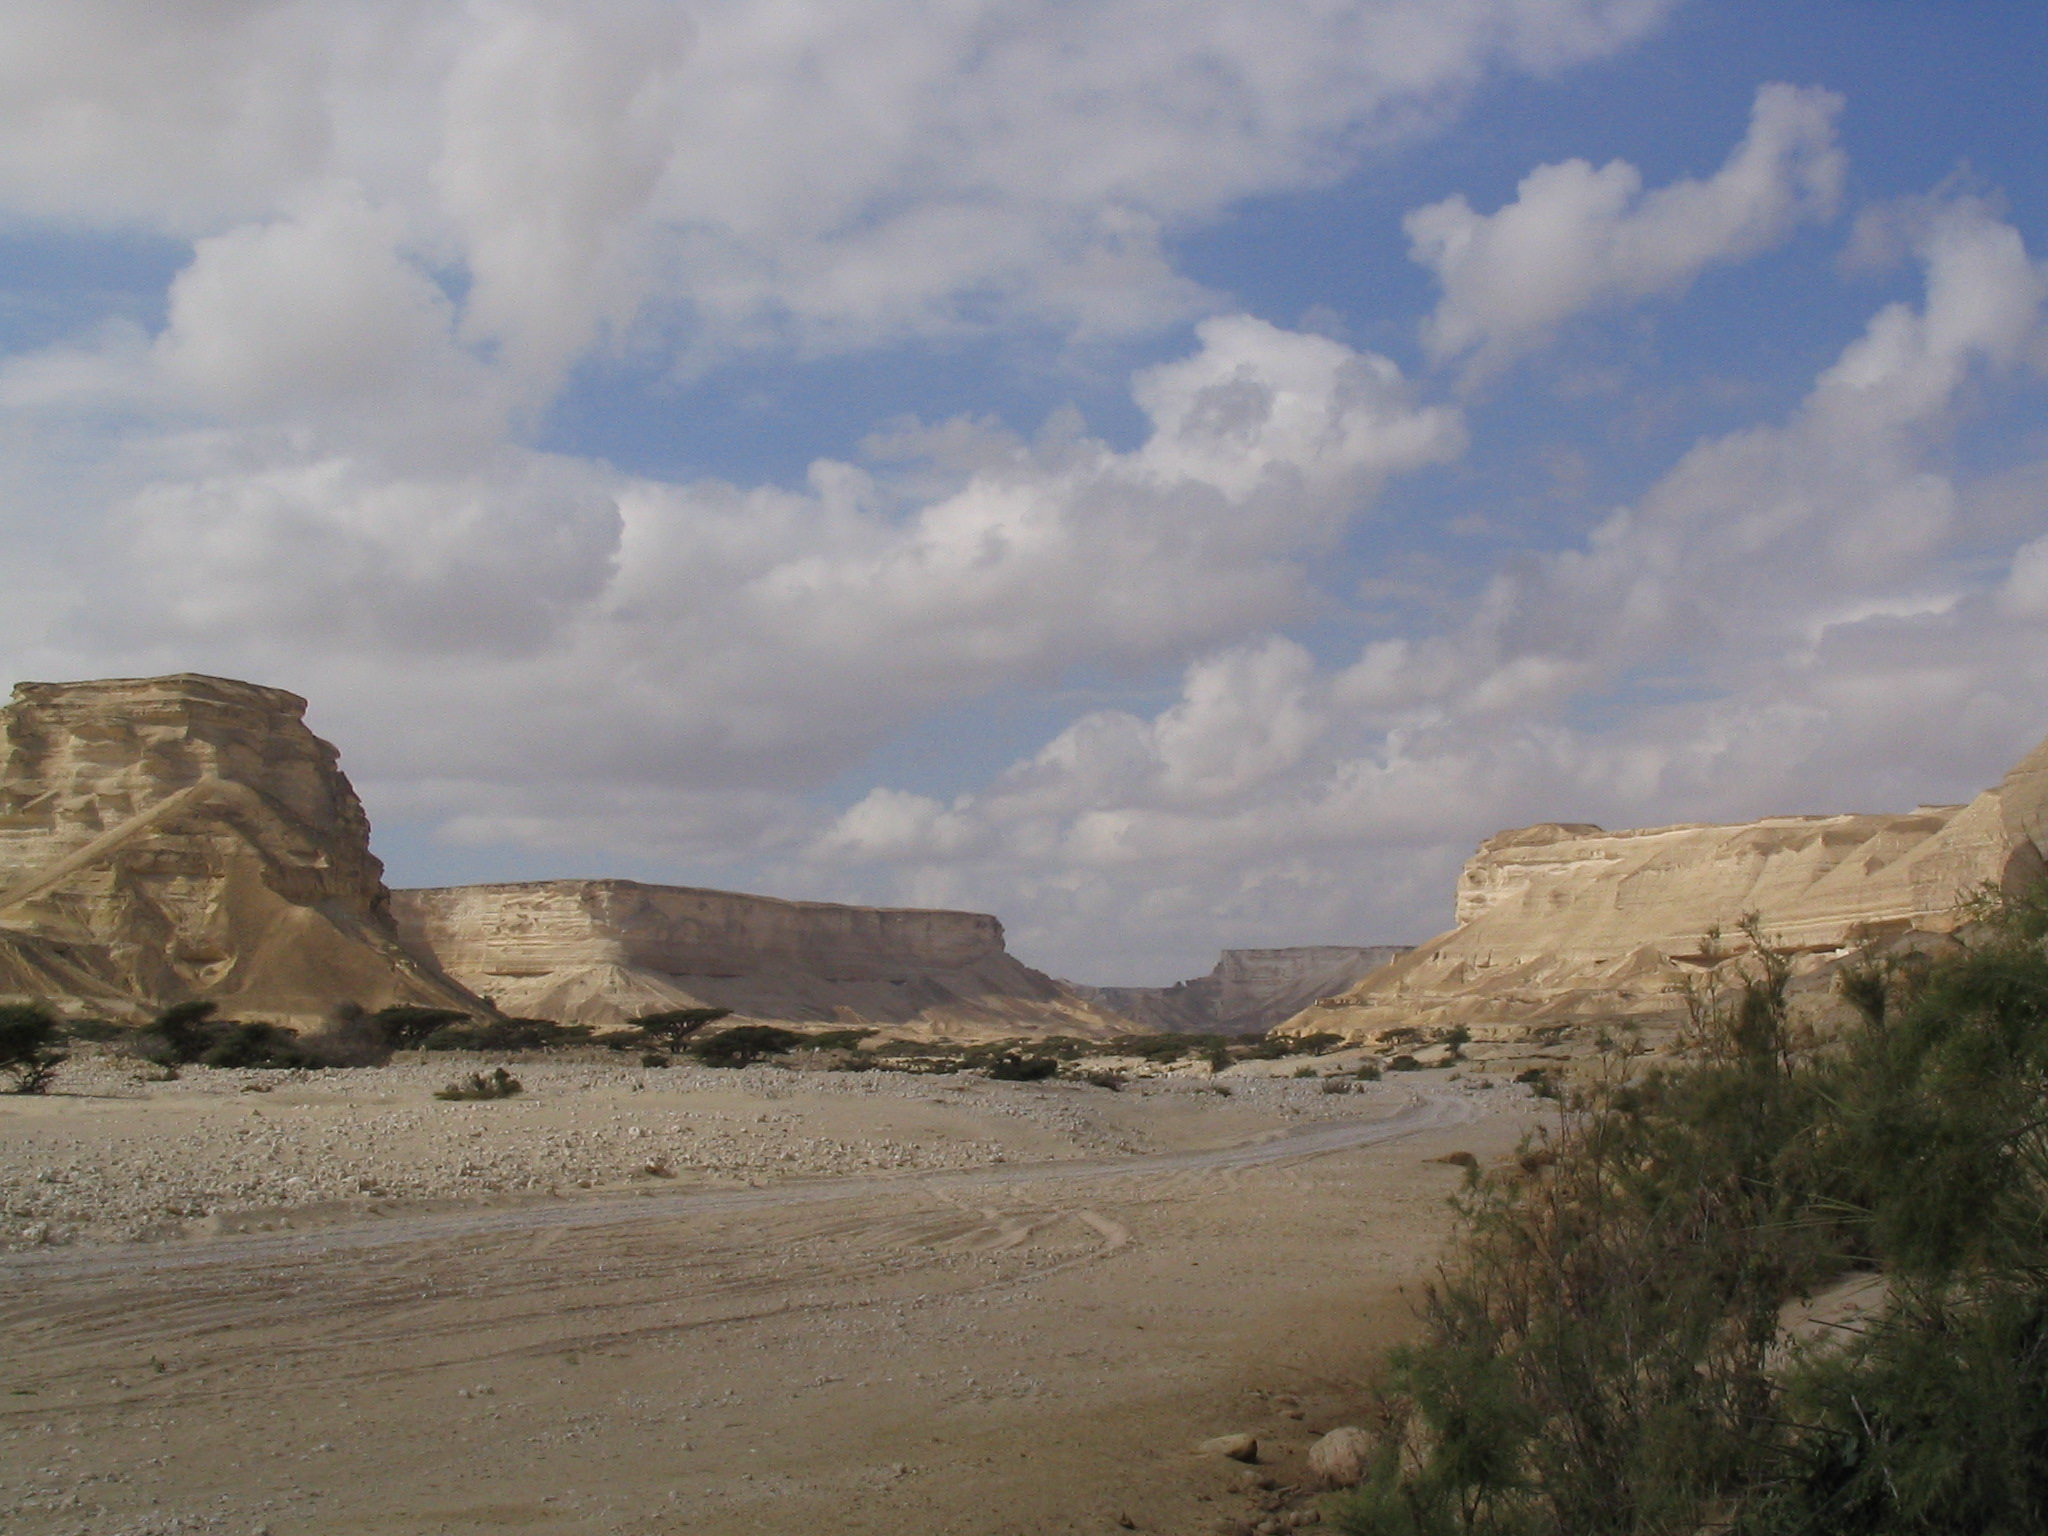 Canyons%20of%20Oman%20by%20Hendrik%20Dacquin.jpg